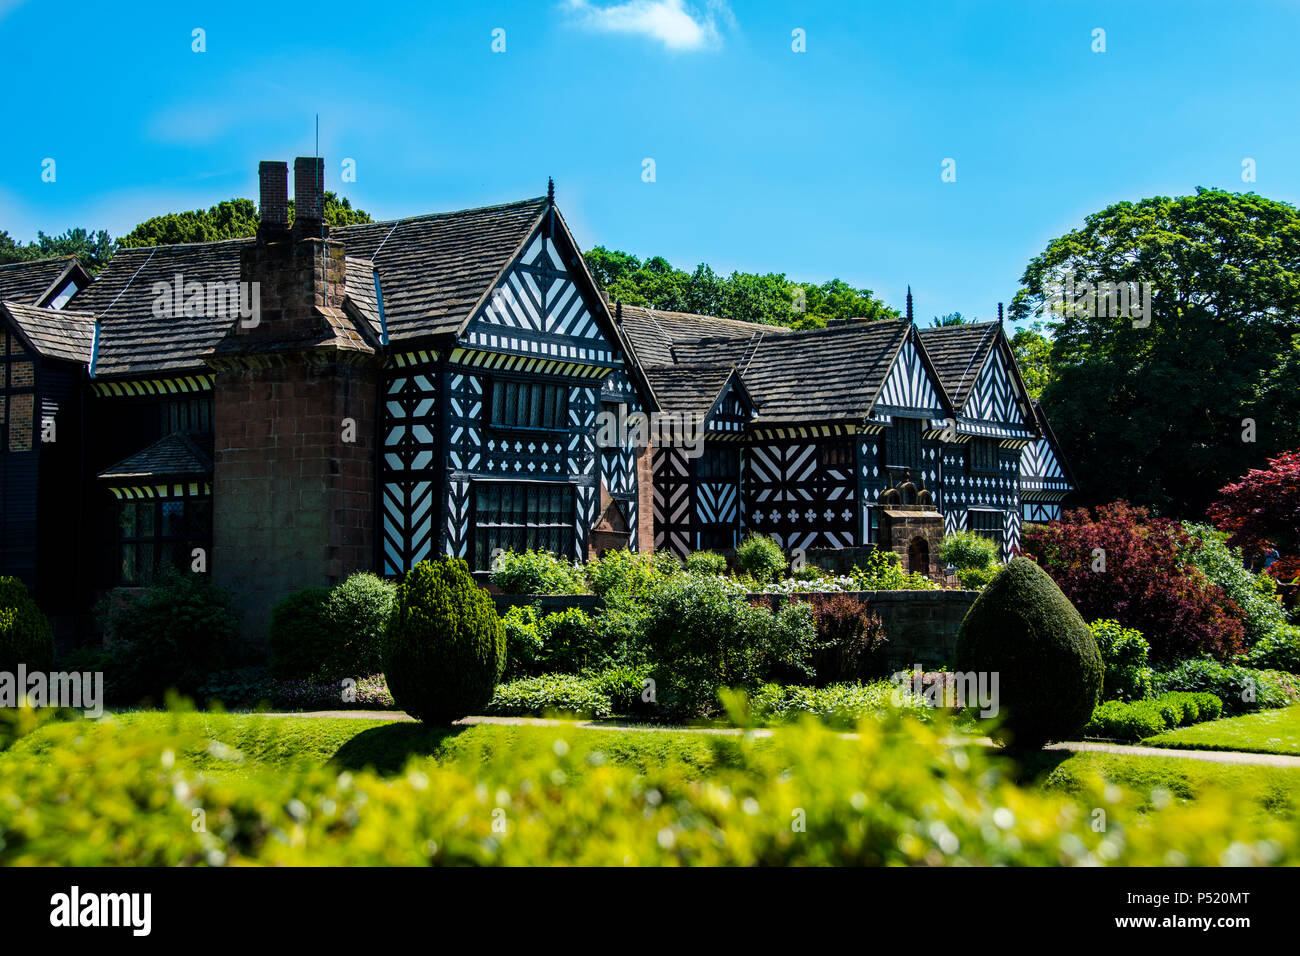 Speke Hall is a wood-framed wattle-and-daub Tudor manor house in Speke, Liverpool, England. It is one of the finest surviving examples of its kind. - Stock Image